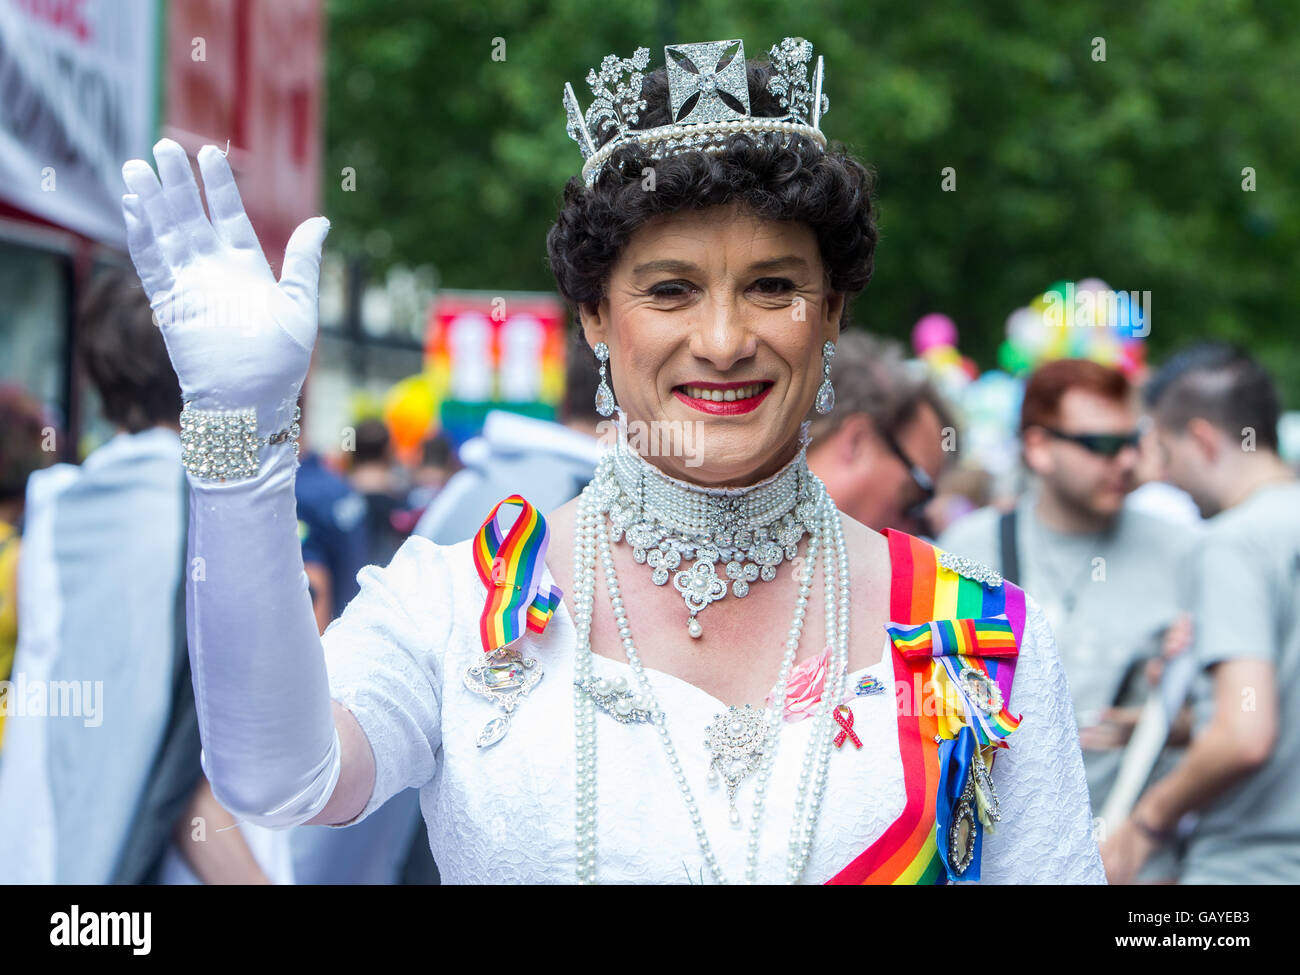 A person dressed as a Queen waving at the  Pride parade in London 2016 - Stock Image